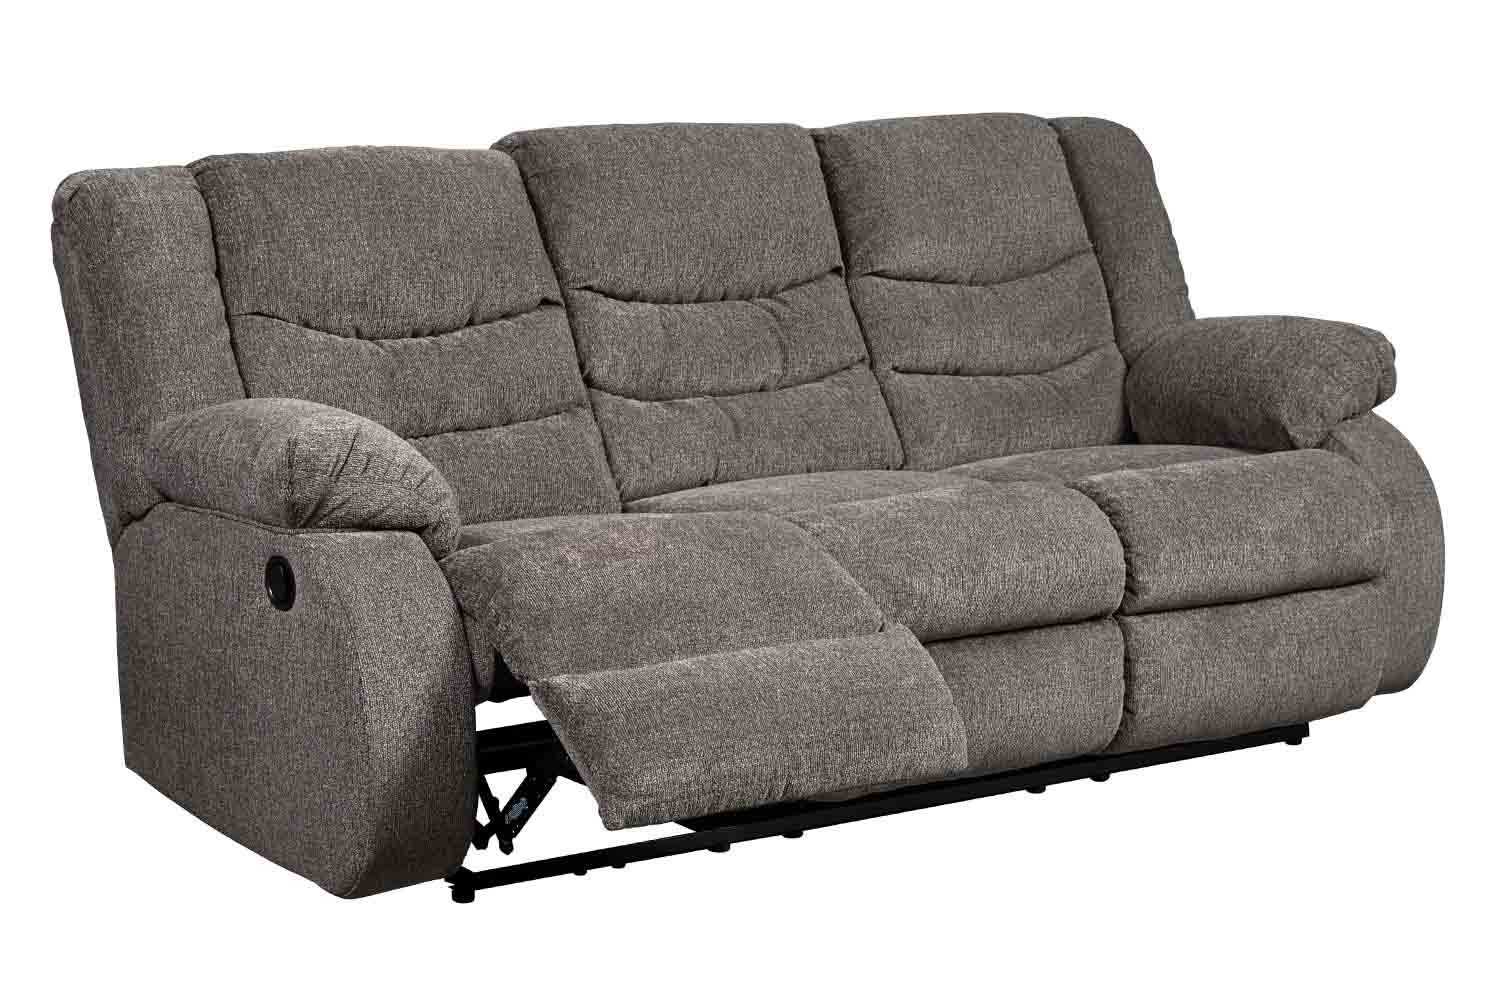 Wondrous Tulen Reclining Sofa In Slate Mor Furniture Pabps2019 Chair Design Images Pabps2019Com